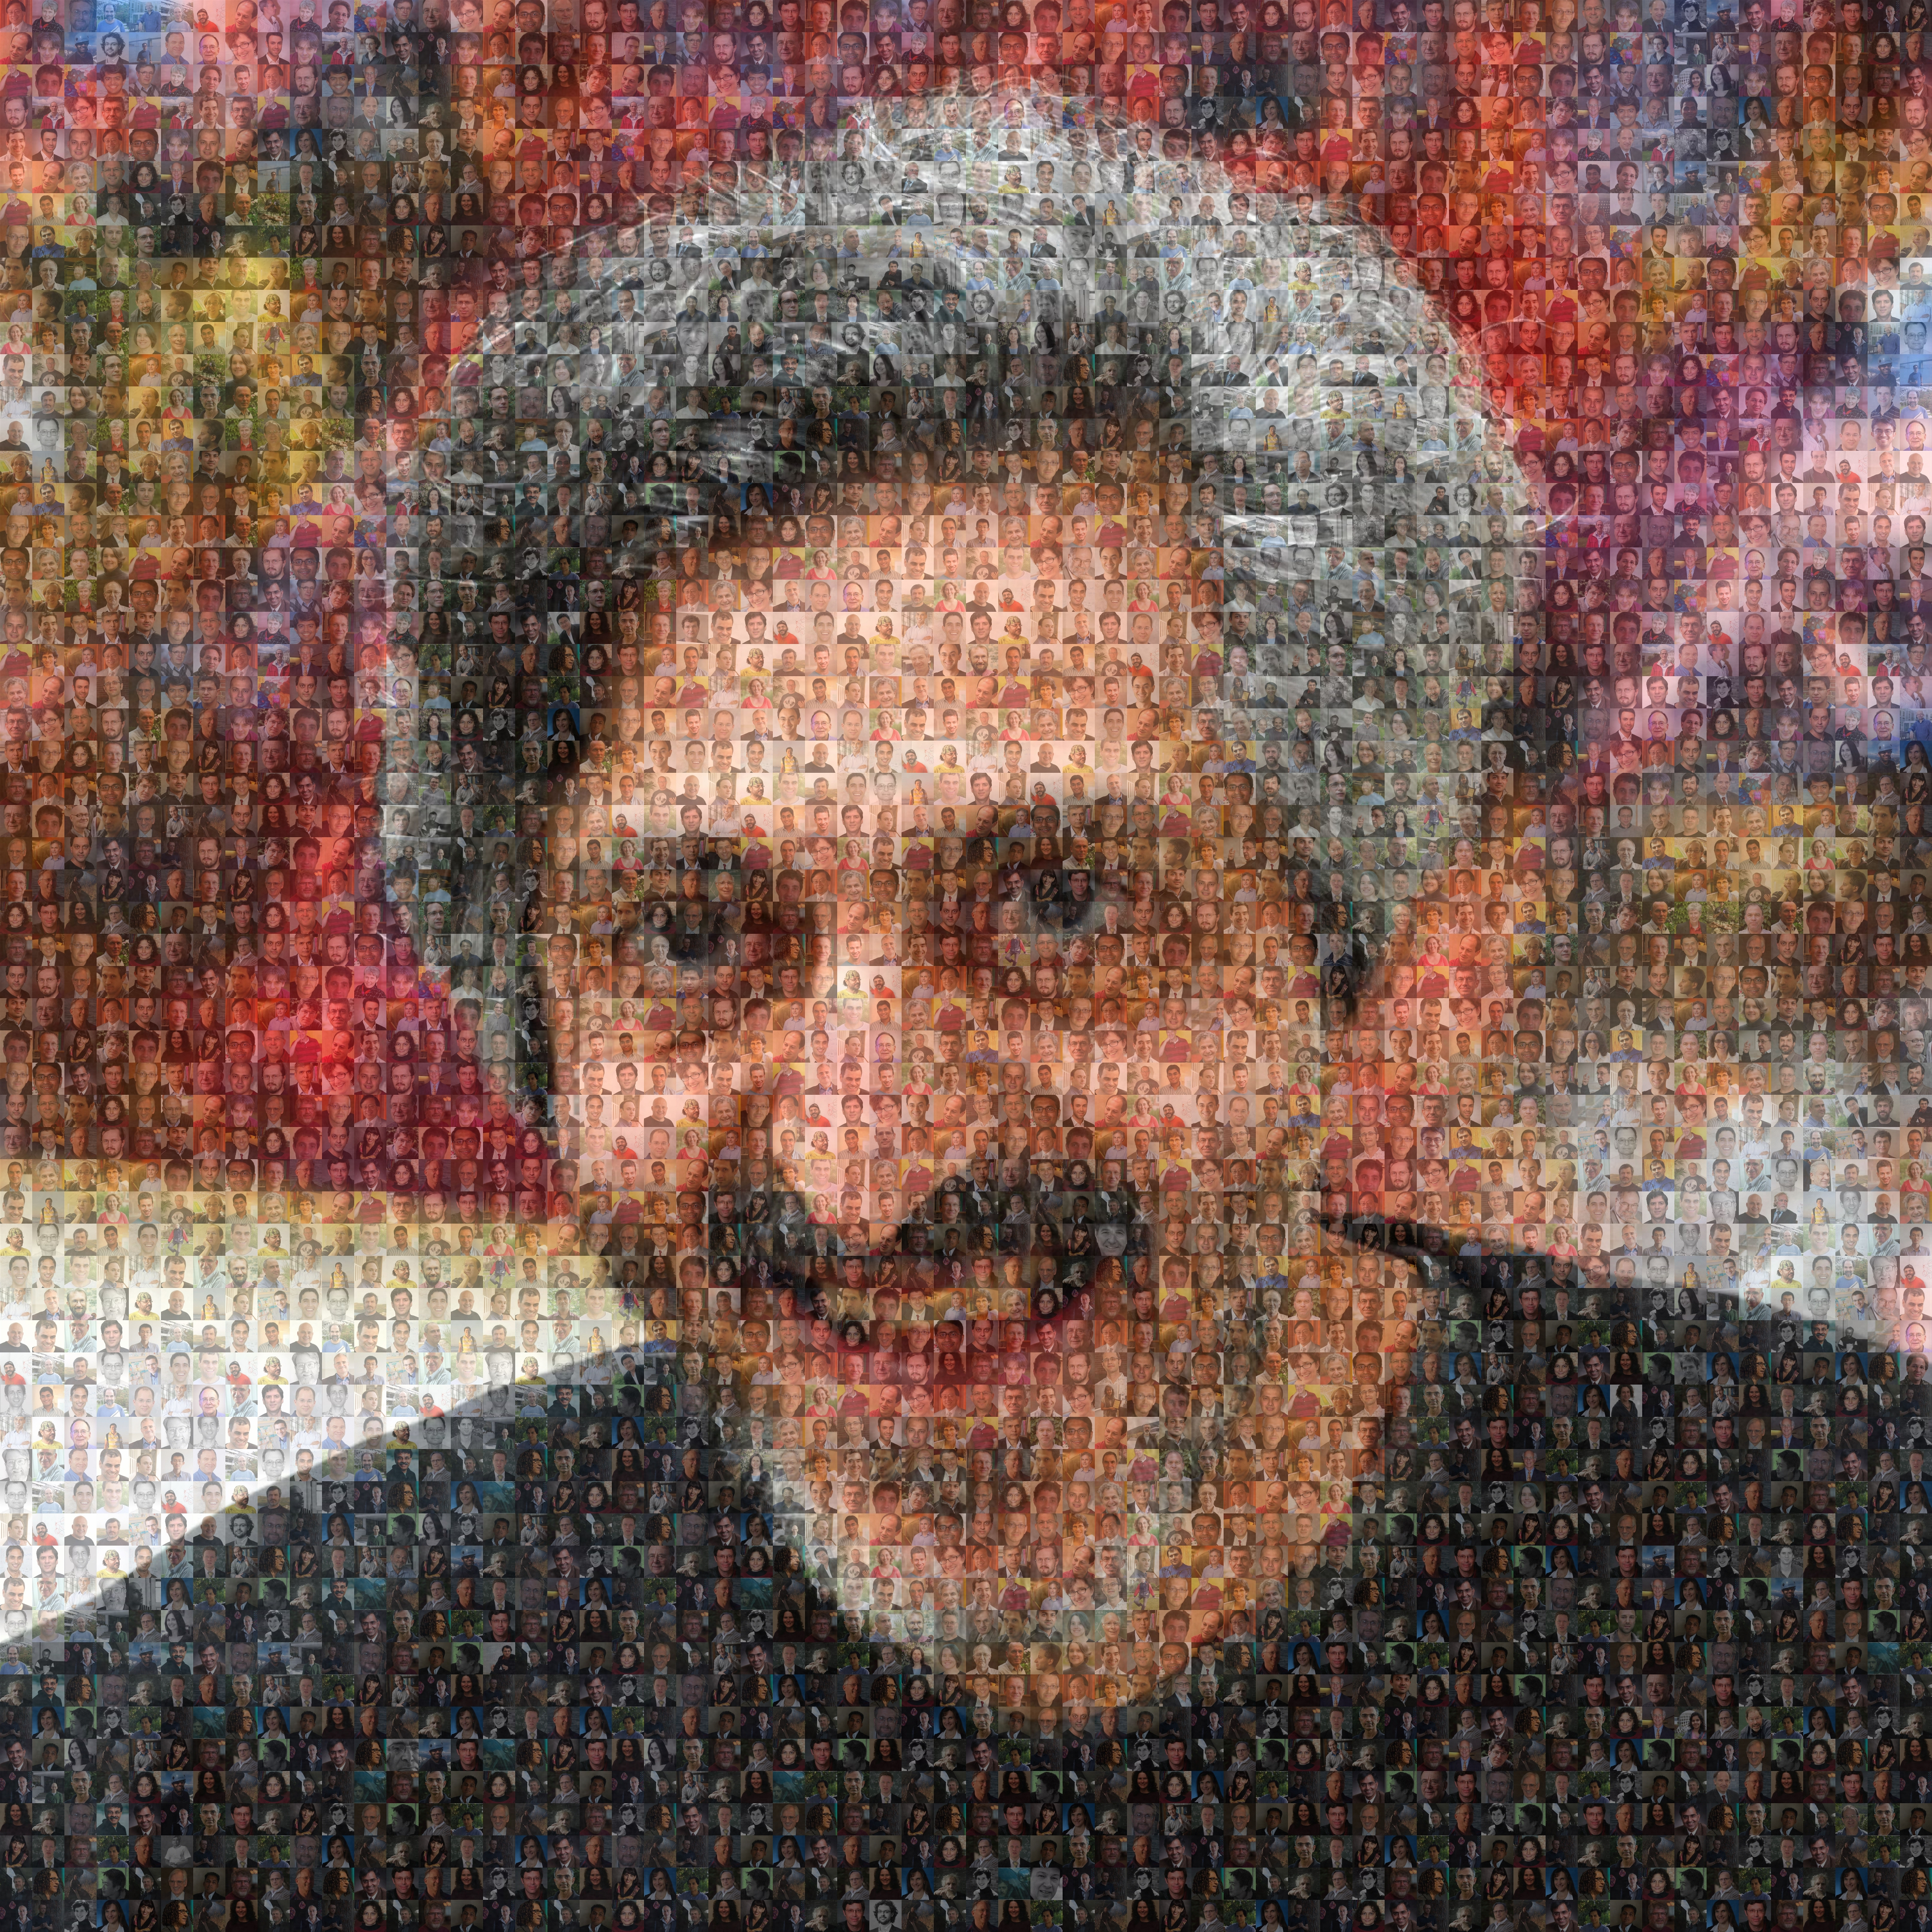 Avi Wigderson is 60 - Mosaic Image